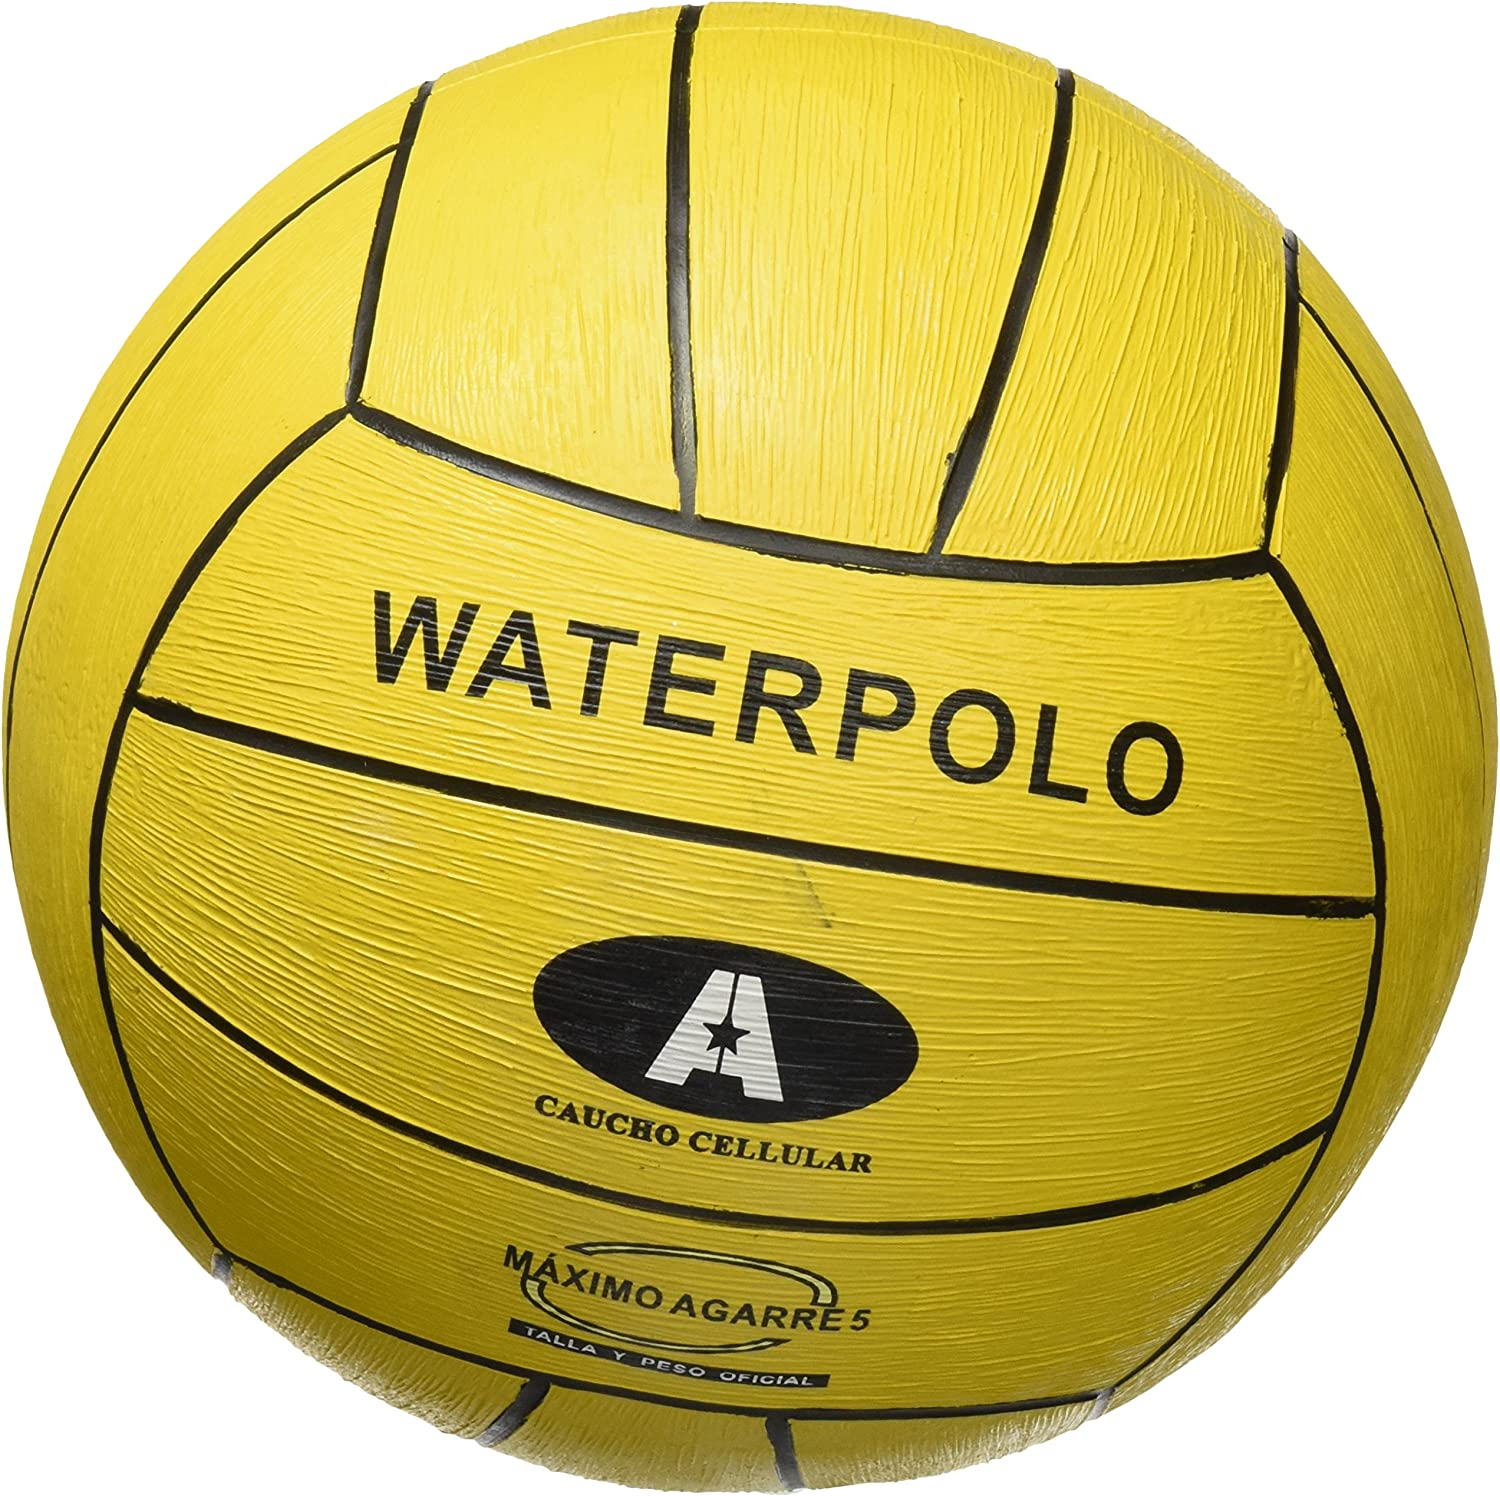 Burbujita 96.034-4 - Balon Waterpolo, caucho: Amazon.es: Deportes ...